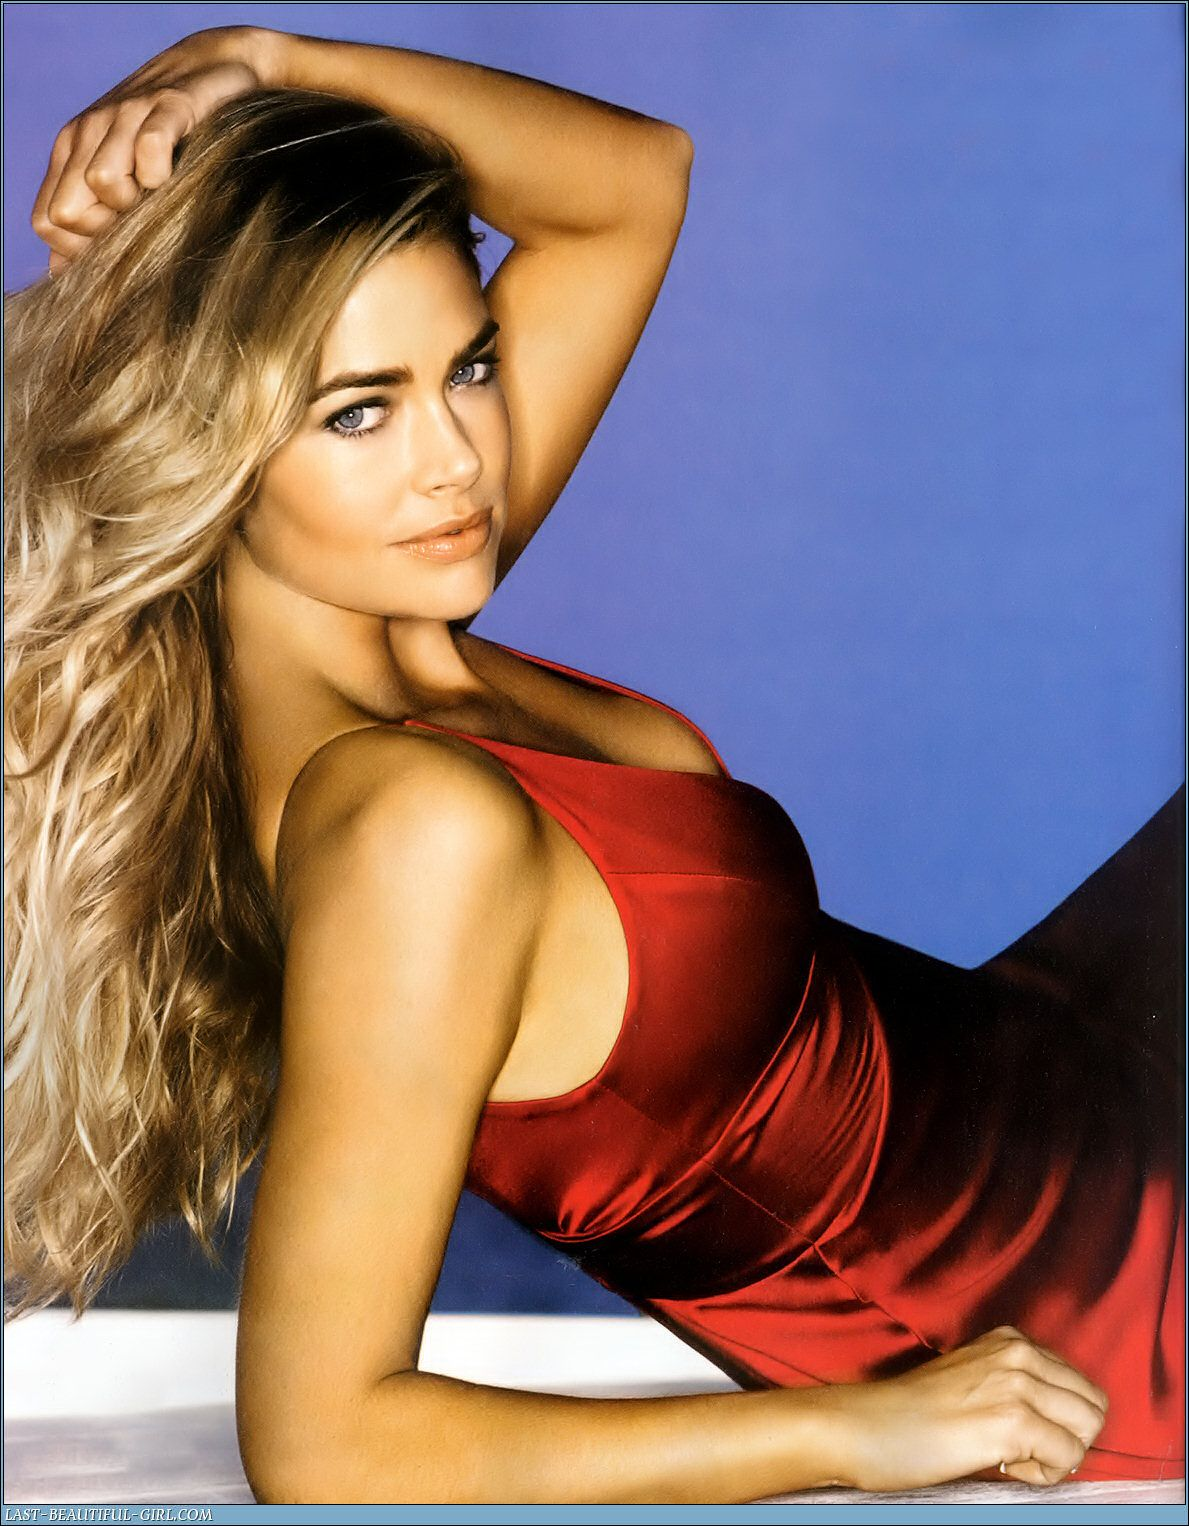 Drunk Celebrities and Hot Photos: Denise Richards never dissapoints ...: http://drunk-celebrities.blogspot.com/2007/11/denise-richards-never-dissapoints-she.html